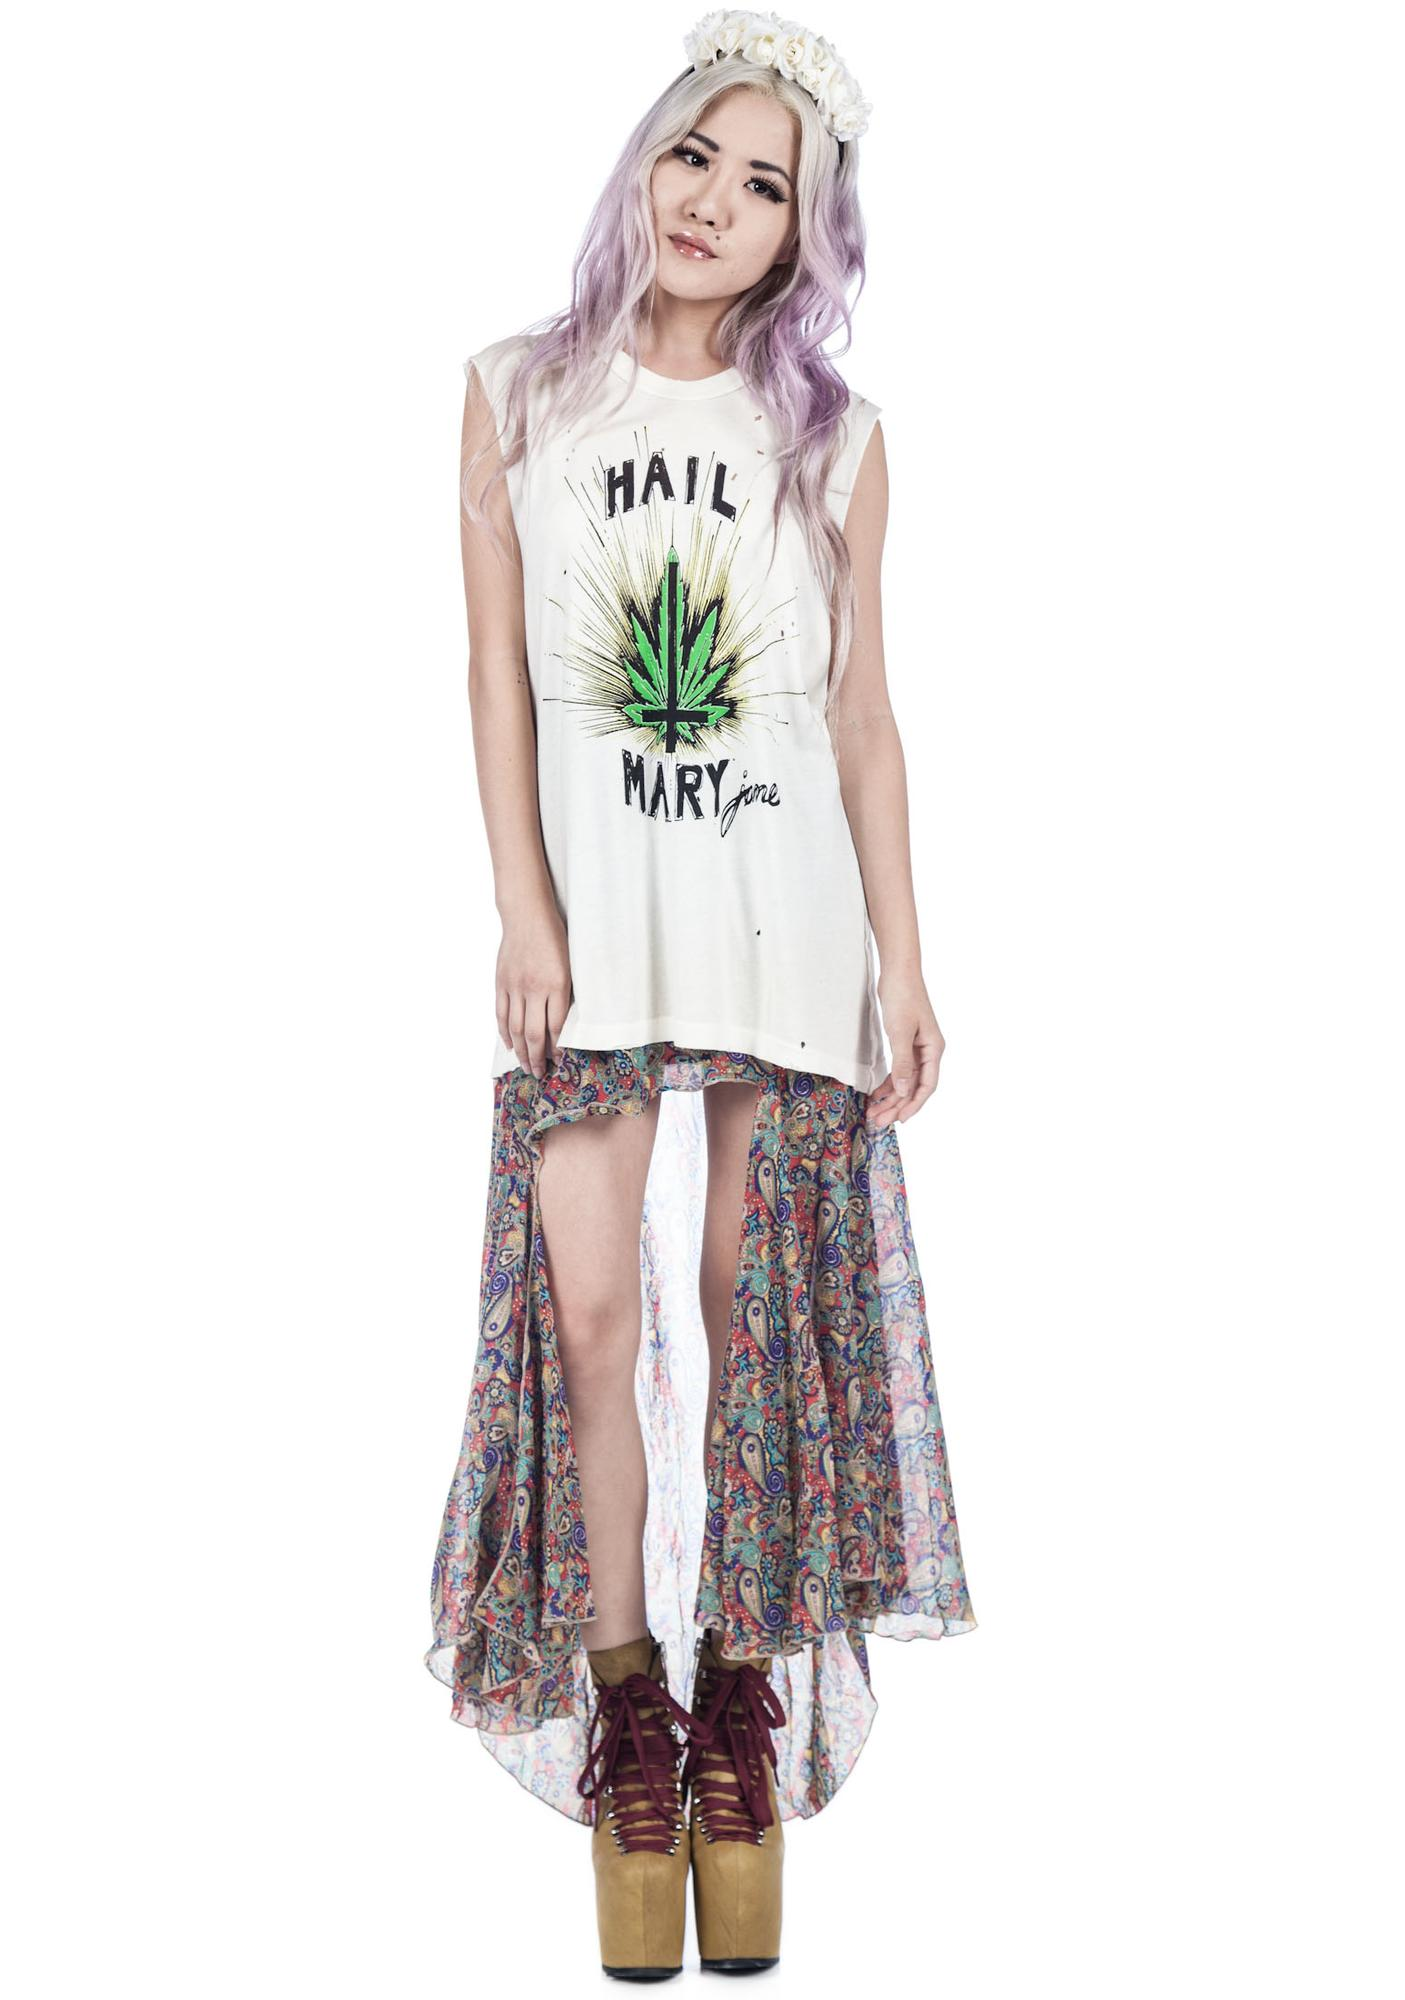 UNIF Hail Mary Jane Tank